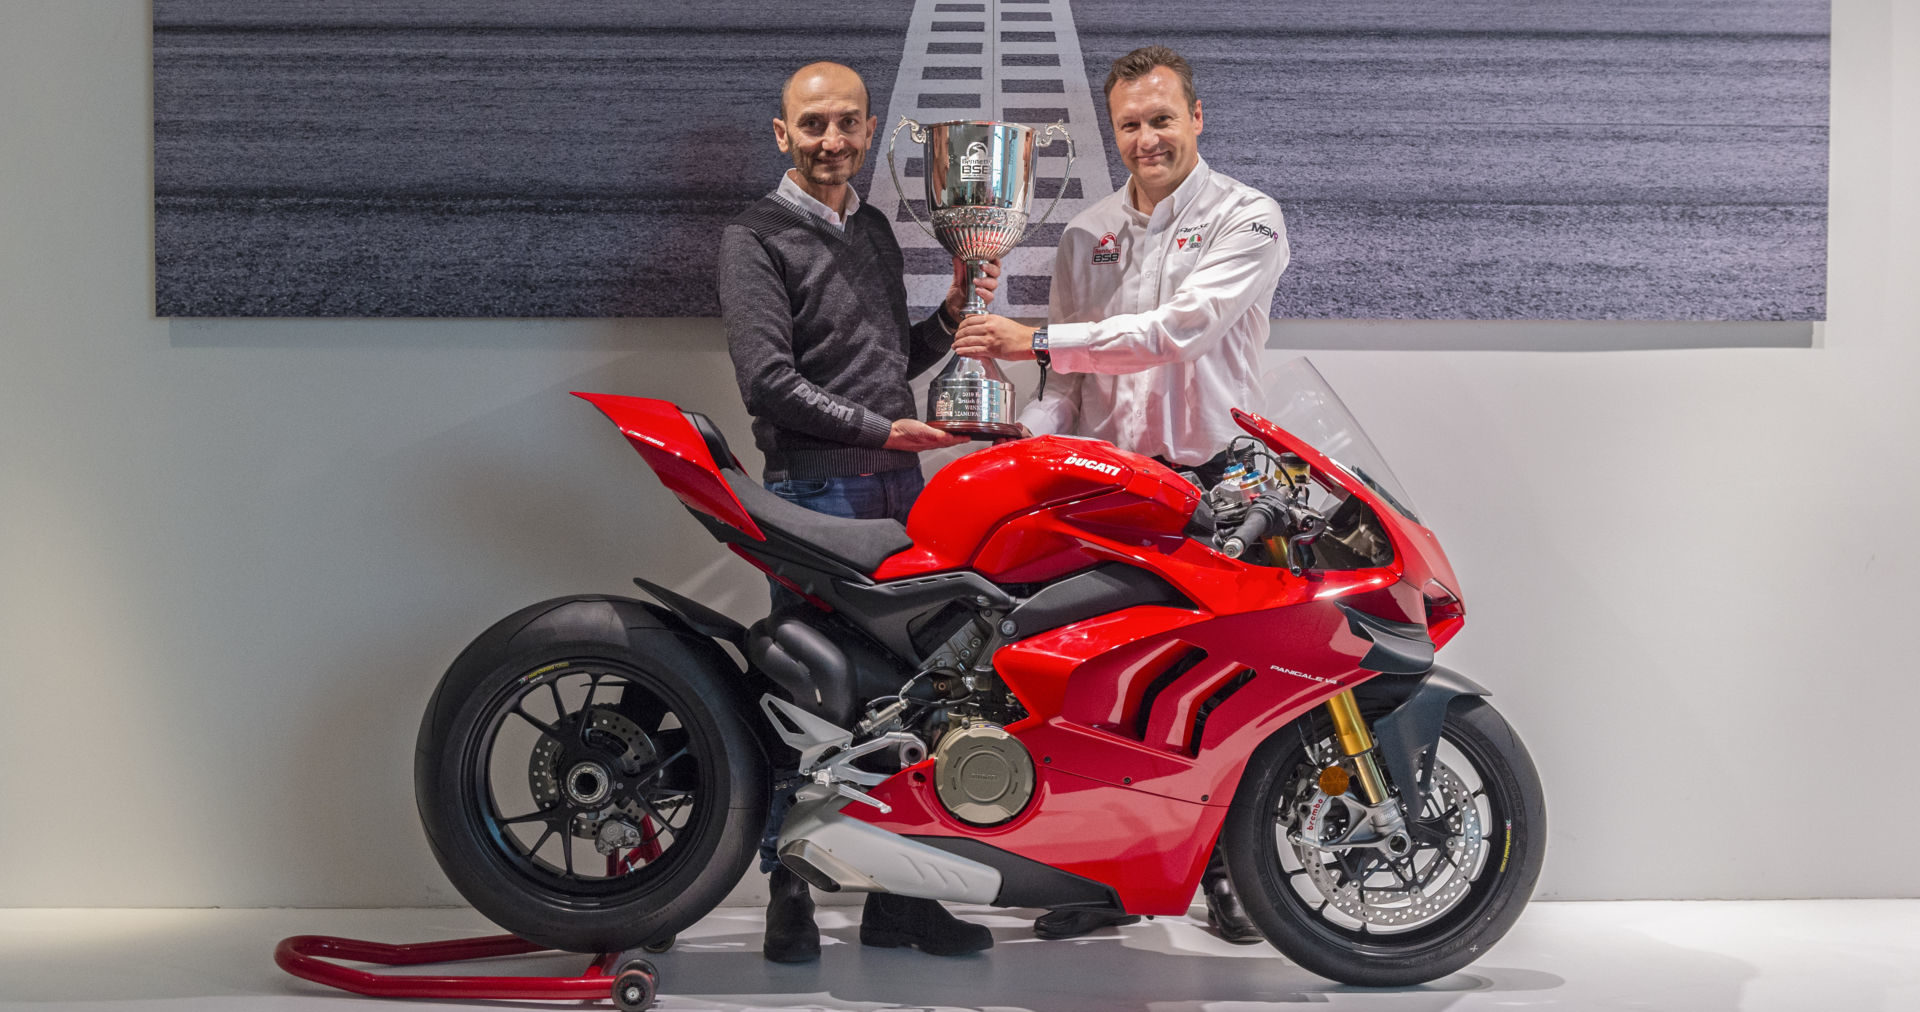 Ducati CEO Claudio Domenicali (left) accepting the British Superbike (BSB) Manufacturer Championship trophy from BSB Series Director Stuart Higgs (right) at Ducati's headquarters in Bologna, Italy. Photo courtesy of Ducati.